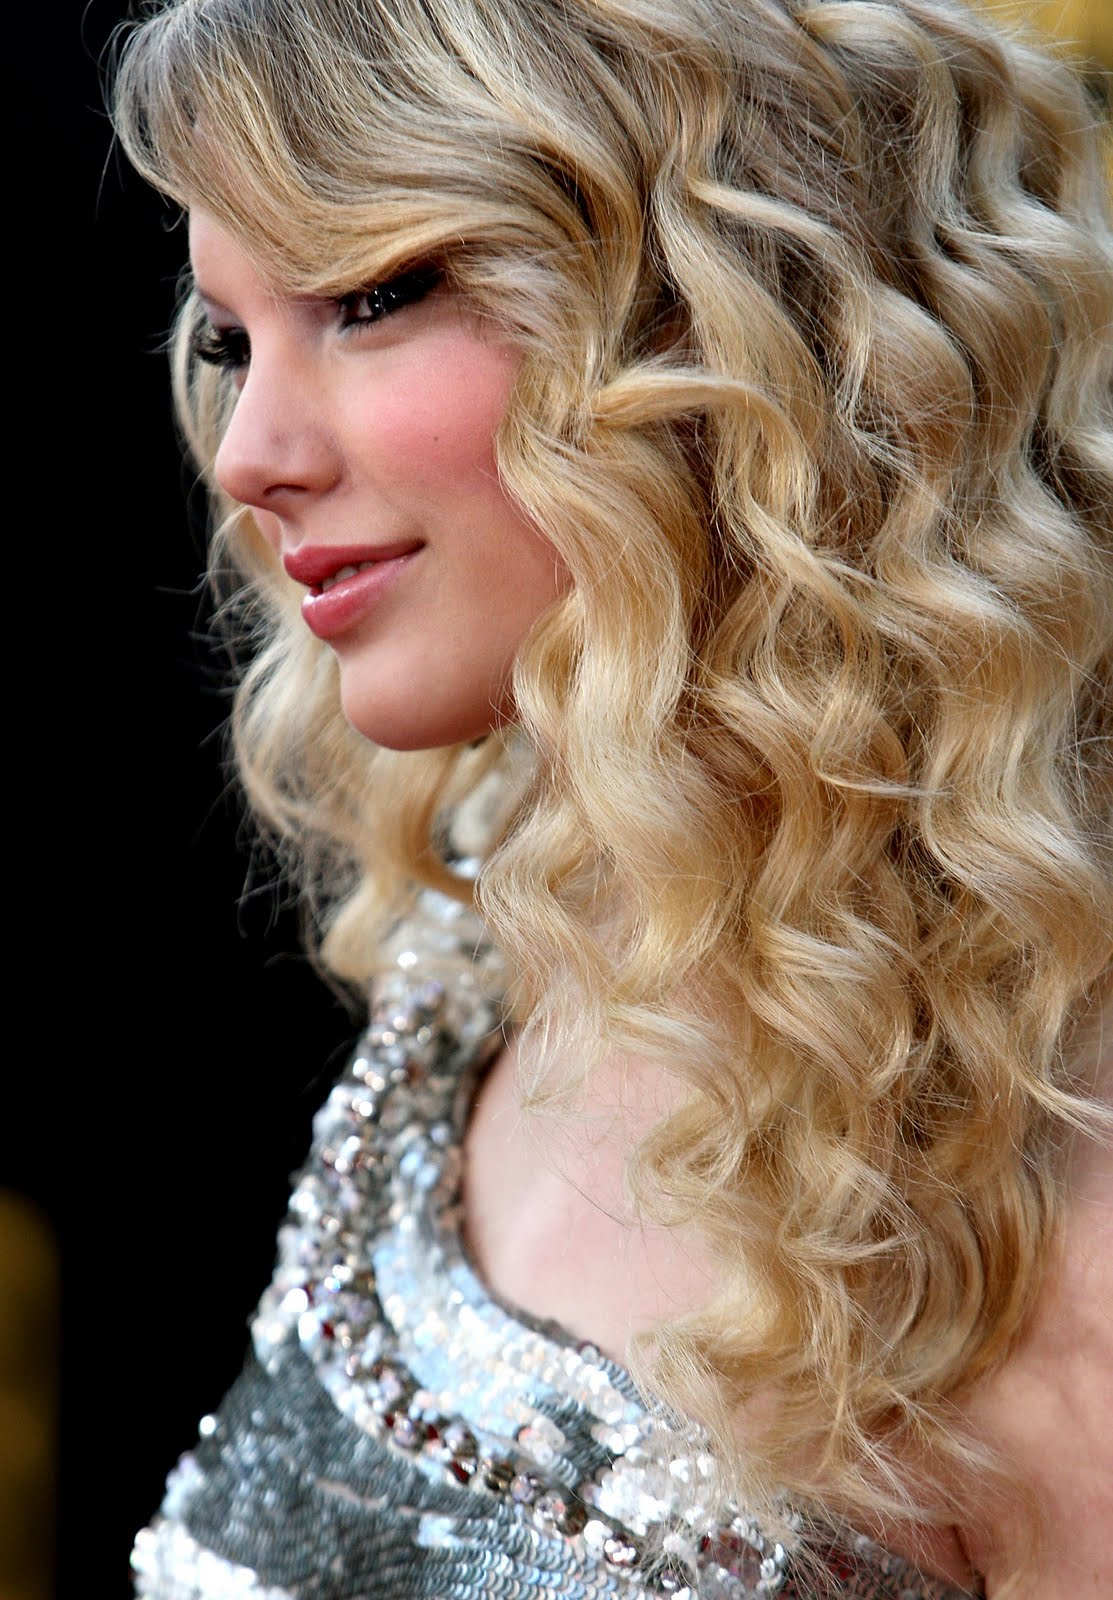 taylor swift pictures club images taylor swift cute♥ hd wallpaper